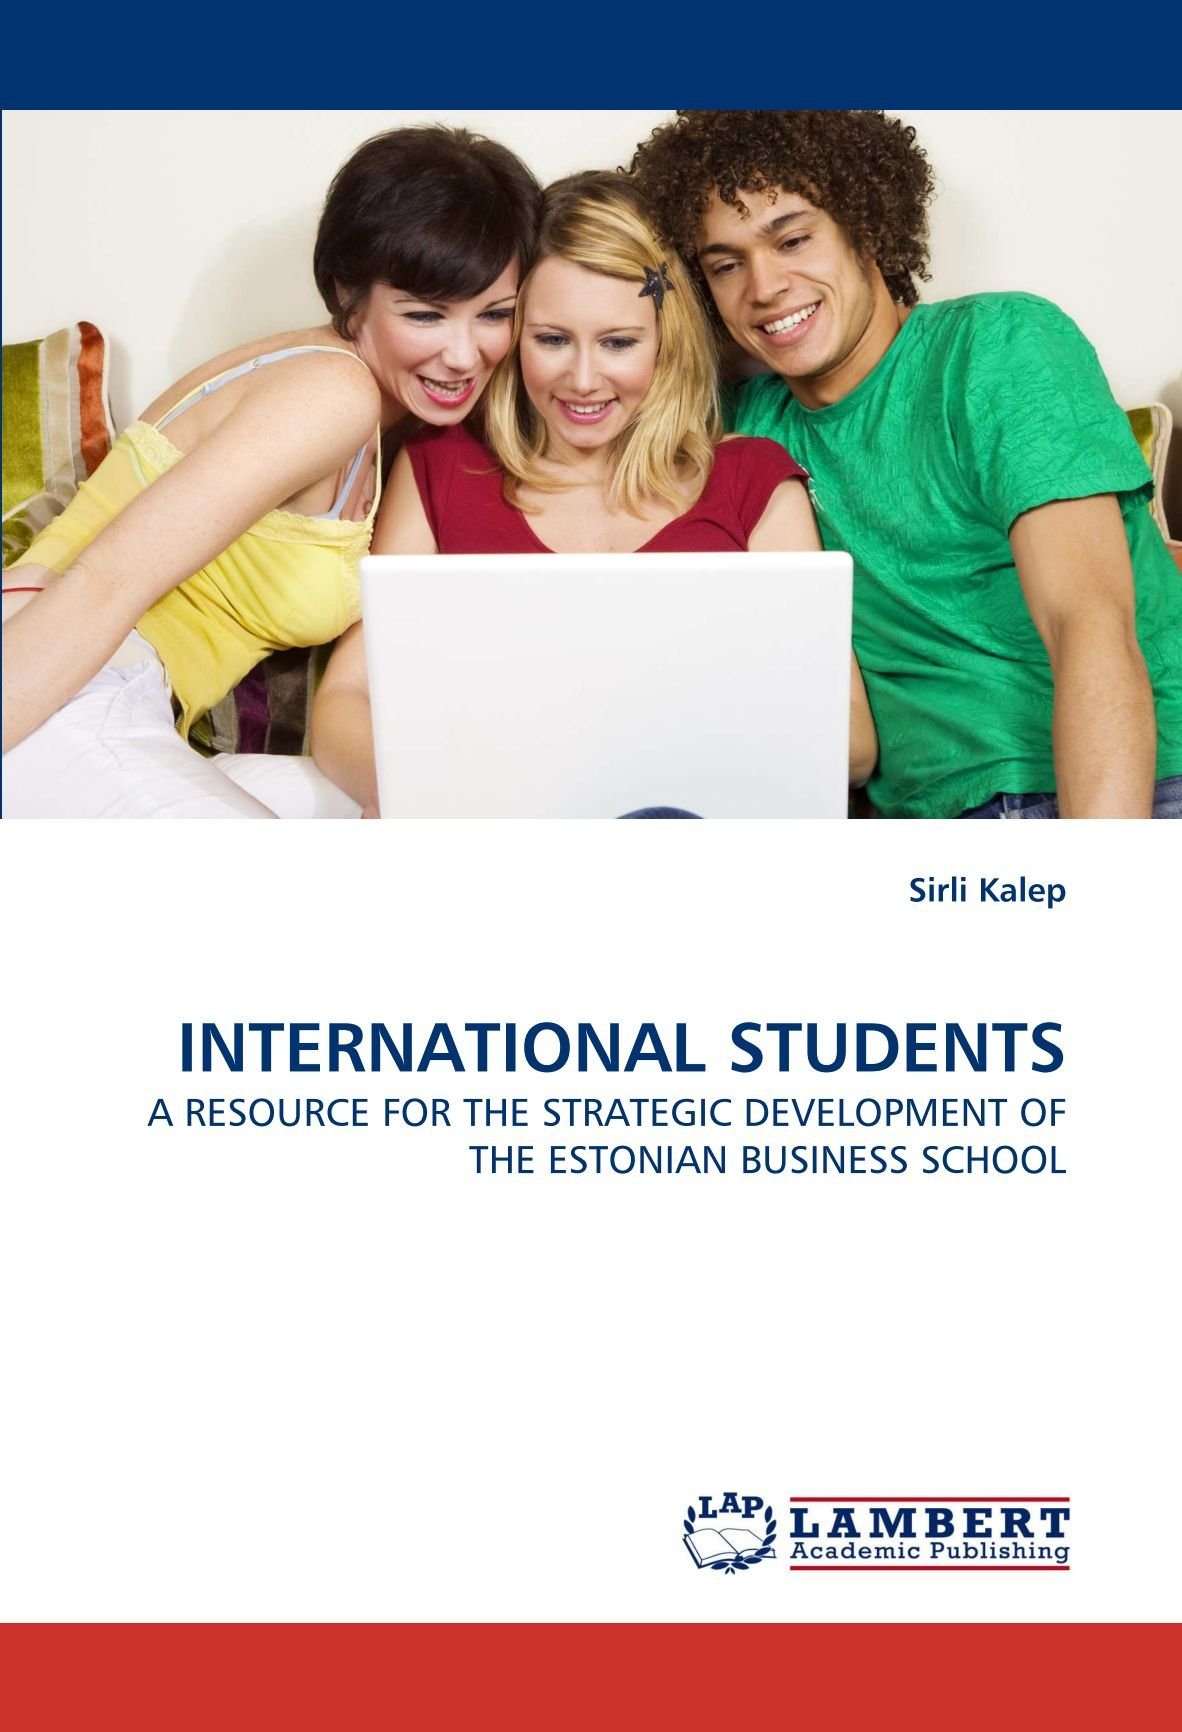 INTERNATIONAL STUDENTS: A RESOURCE FOR THE STRATEGIC DEVELOPMENT OF THE ESTONIAN BUSINESS SCHOOL pdf epub